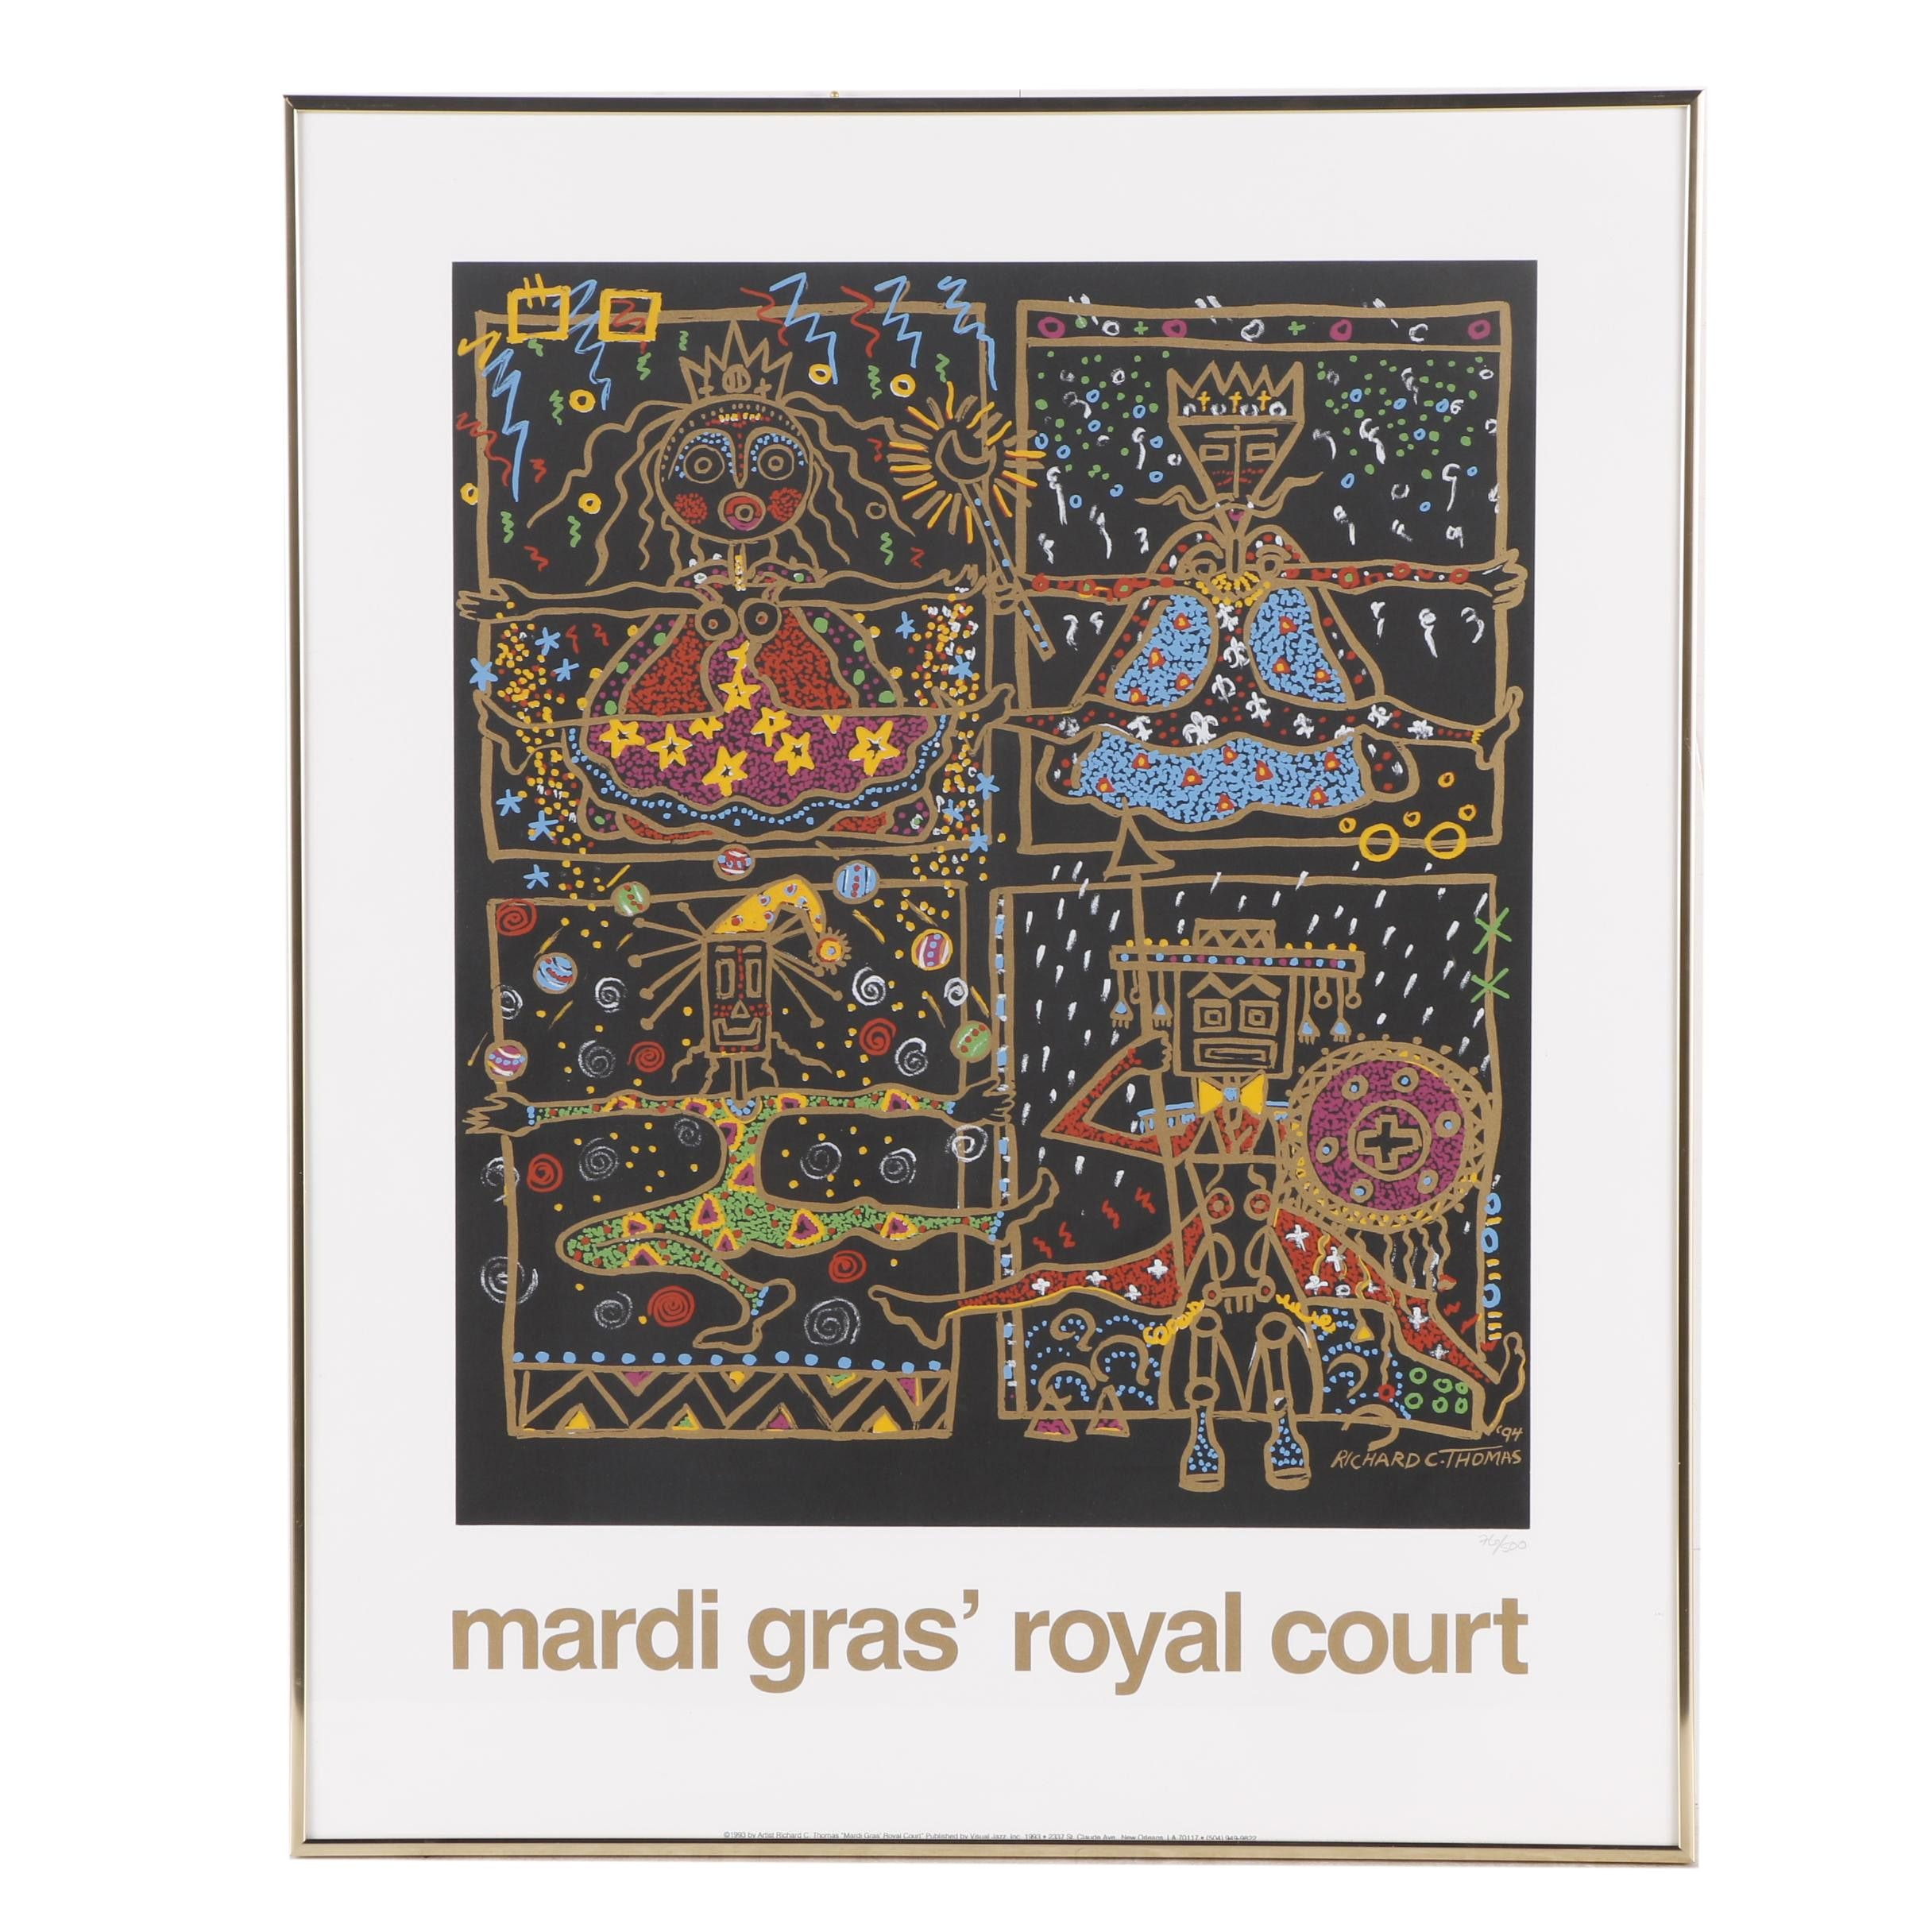 1994 Serigraph after Richard C. Thomas Mardi Gras Royal Court Poster